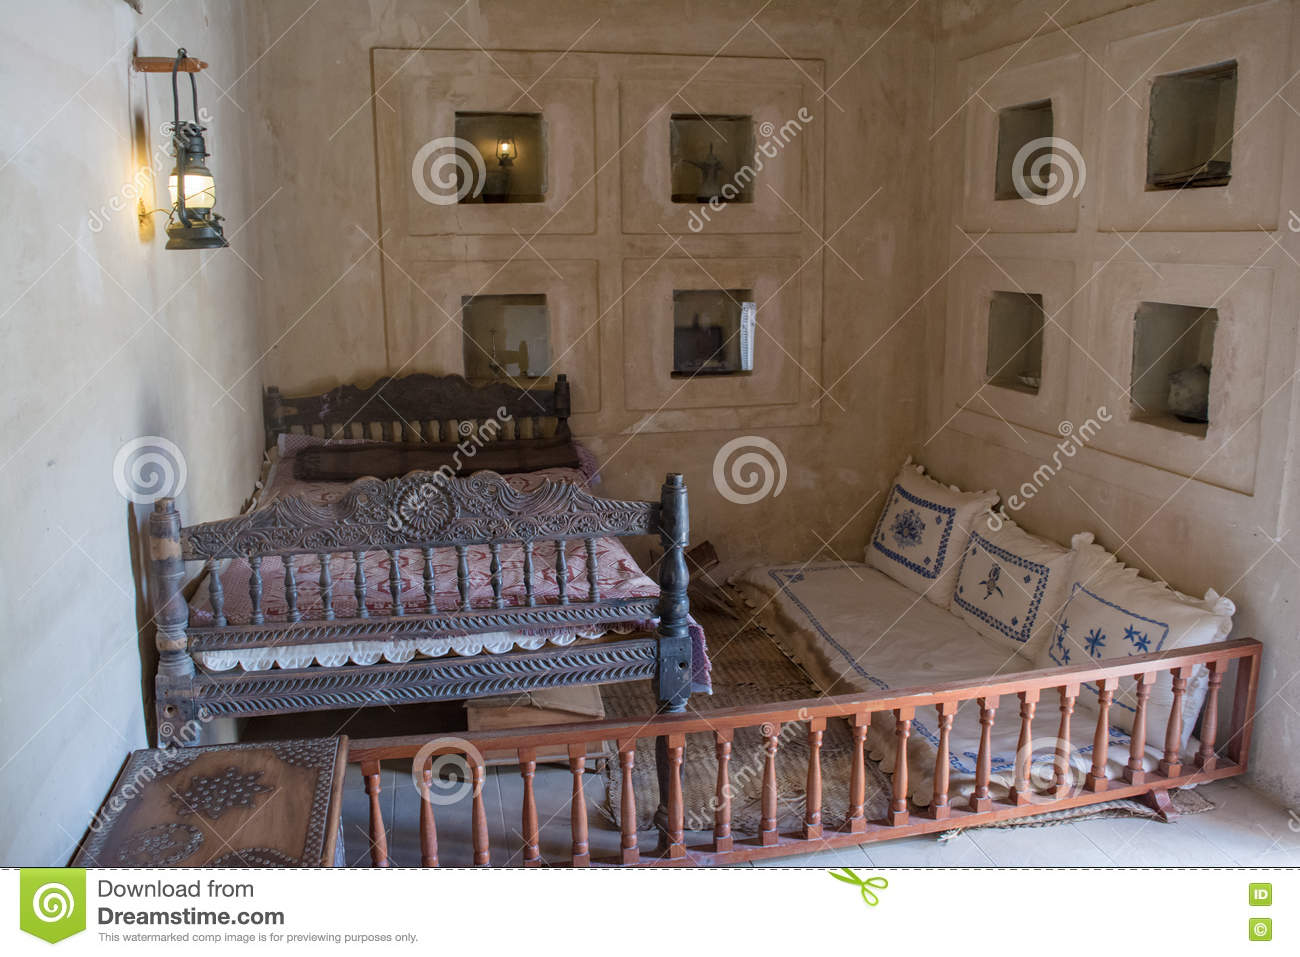 Ancient arabian bedroom with bed and pillows. Ancient Arabian Bedroom With Bed And Pillows Stock Photo   Image